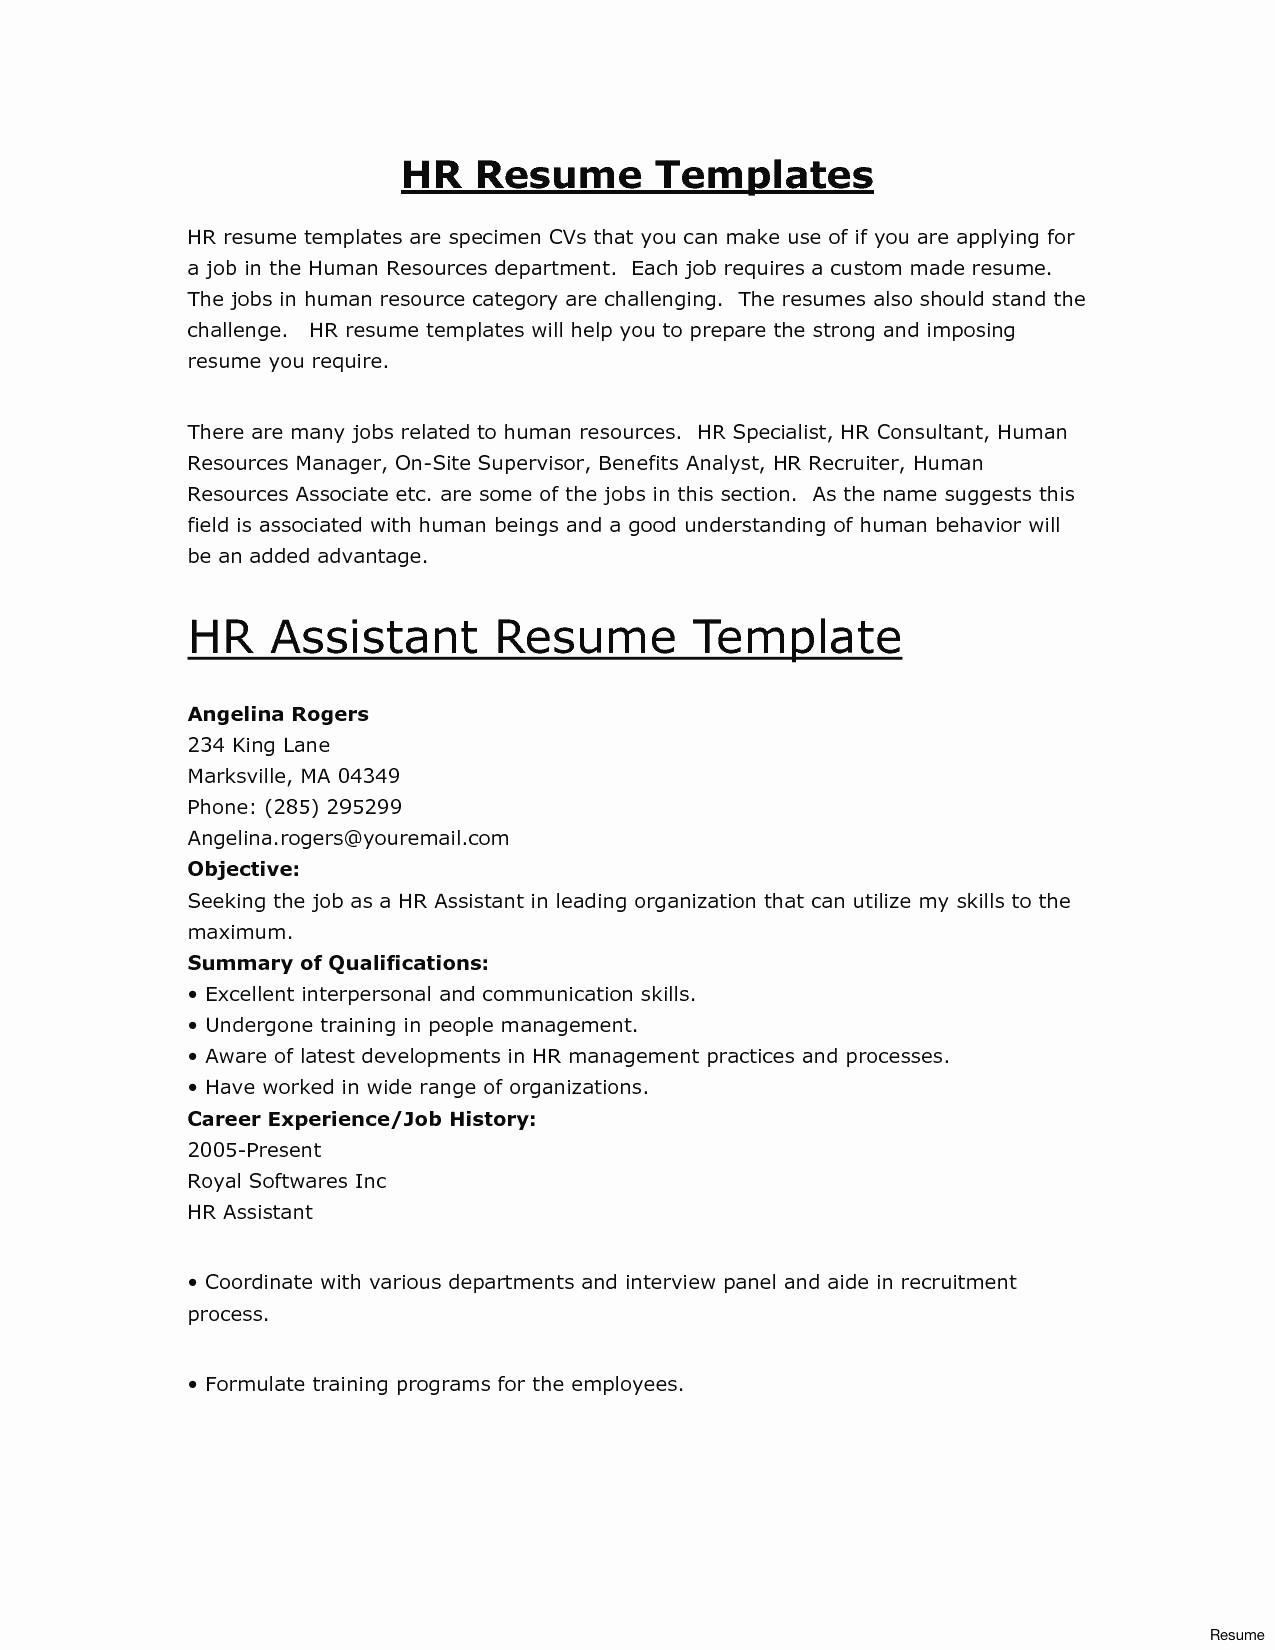 Confirmation Letter Template - Inspirational Employment Verification Letter Template